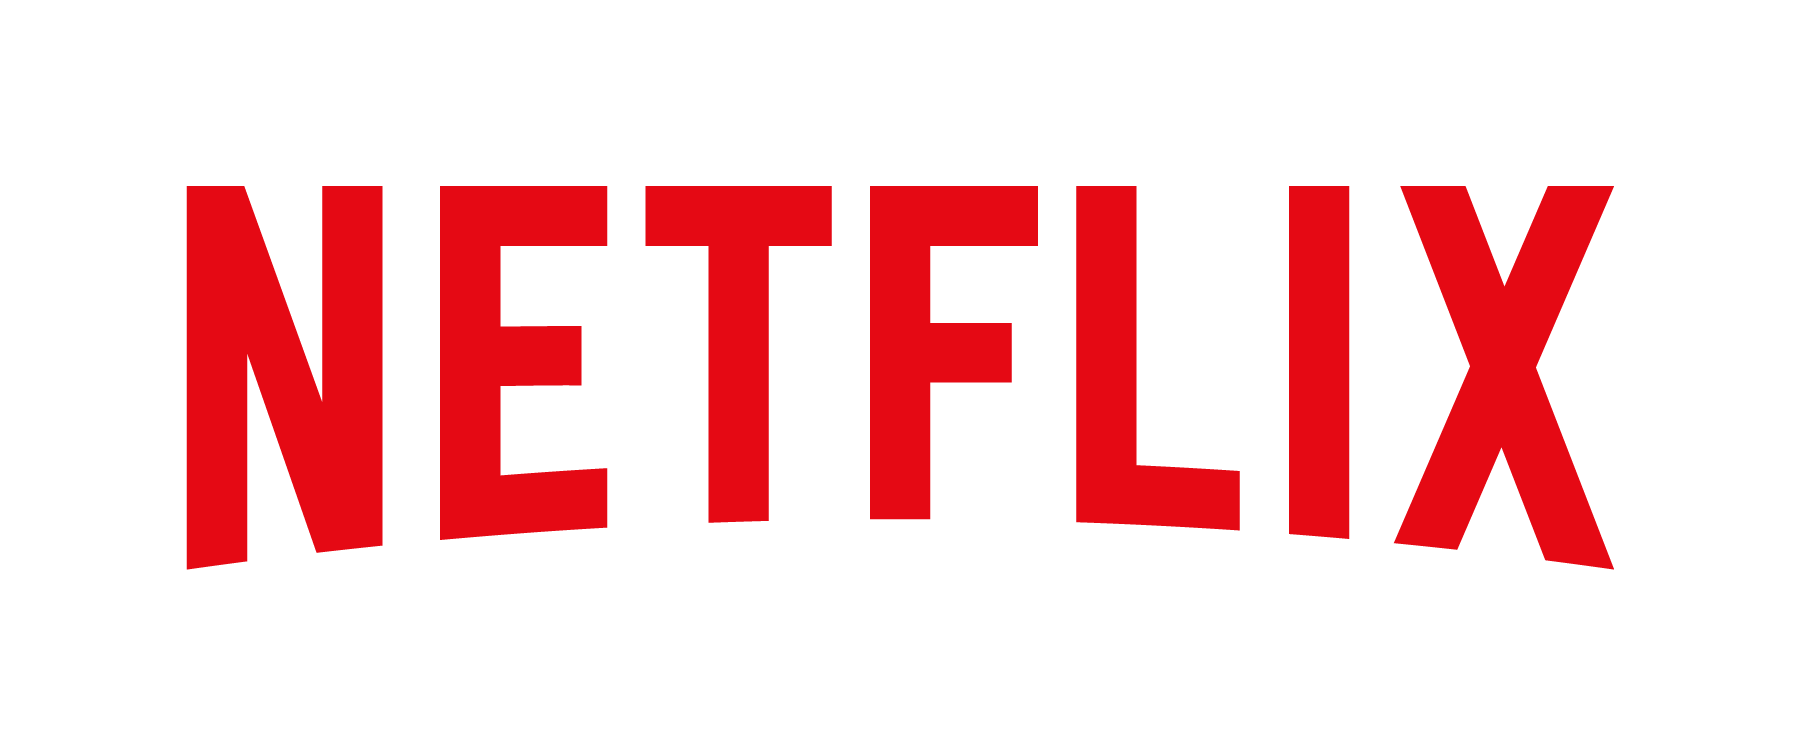 netflix logo in red